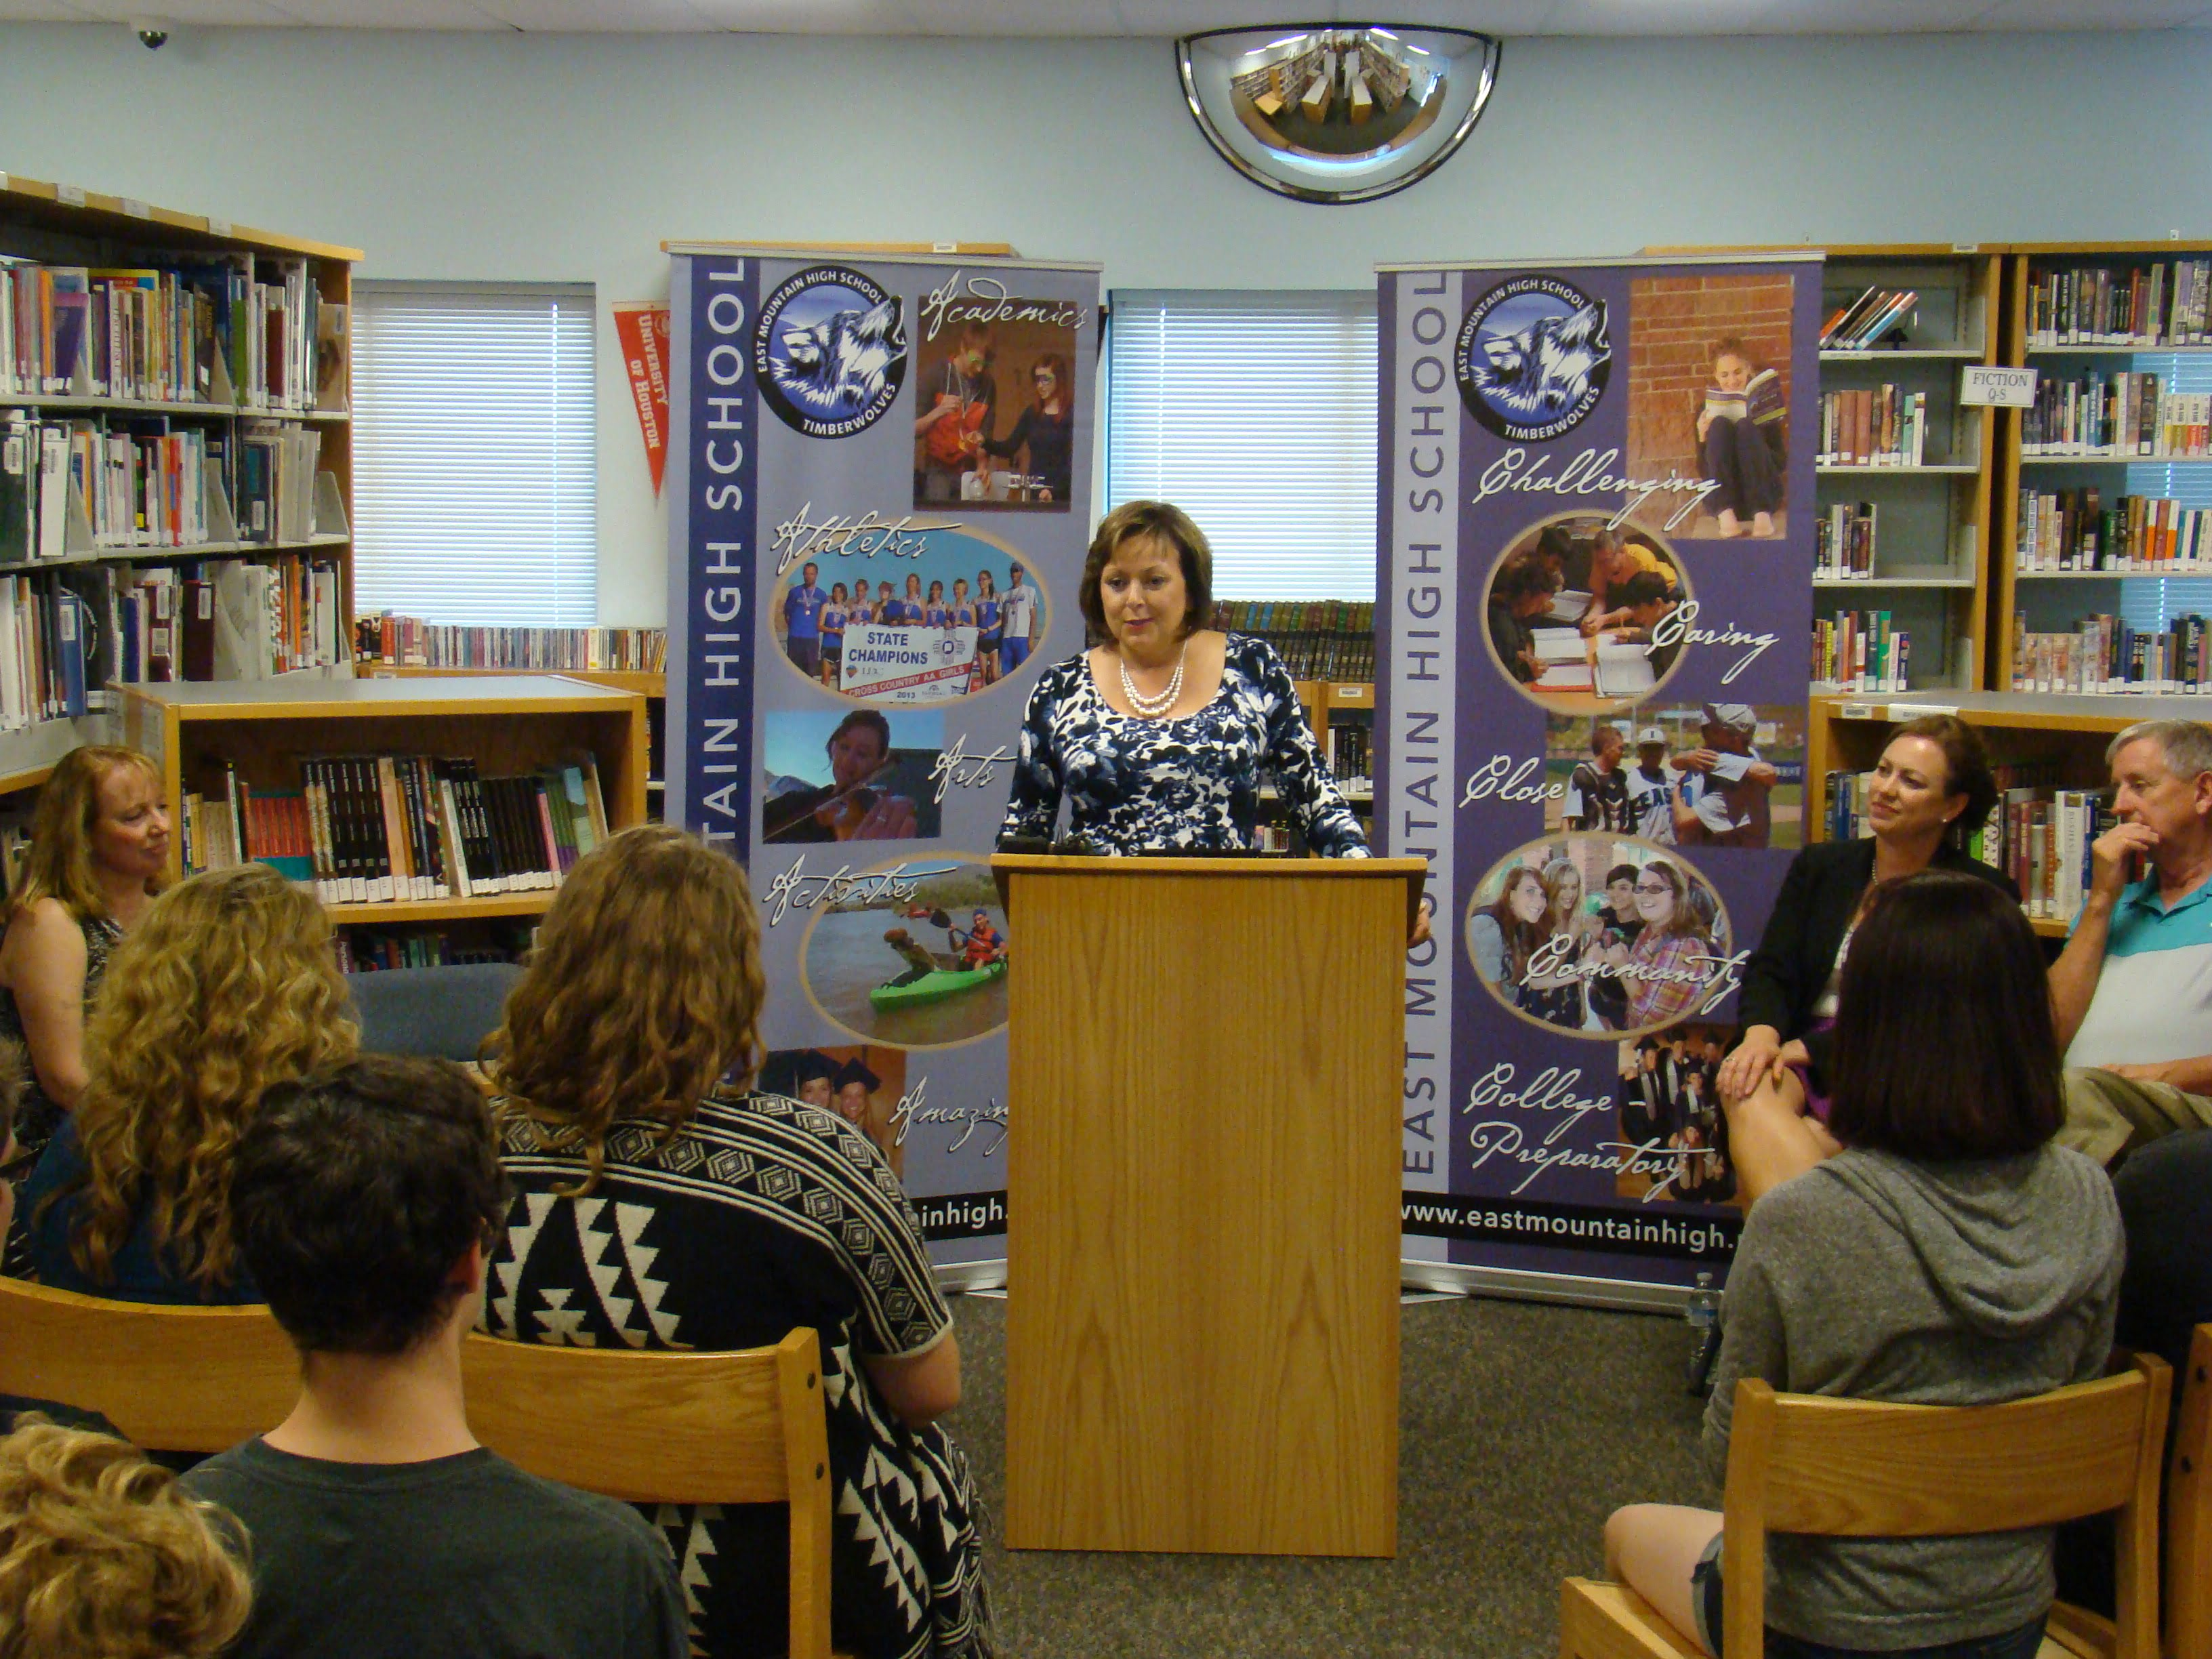 Gov. Martinez touts graduation program at EMHS